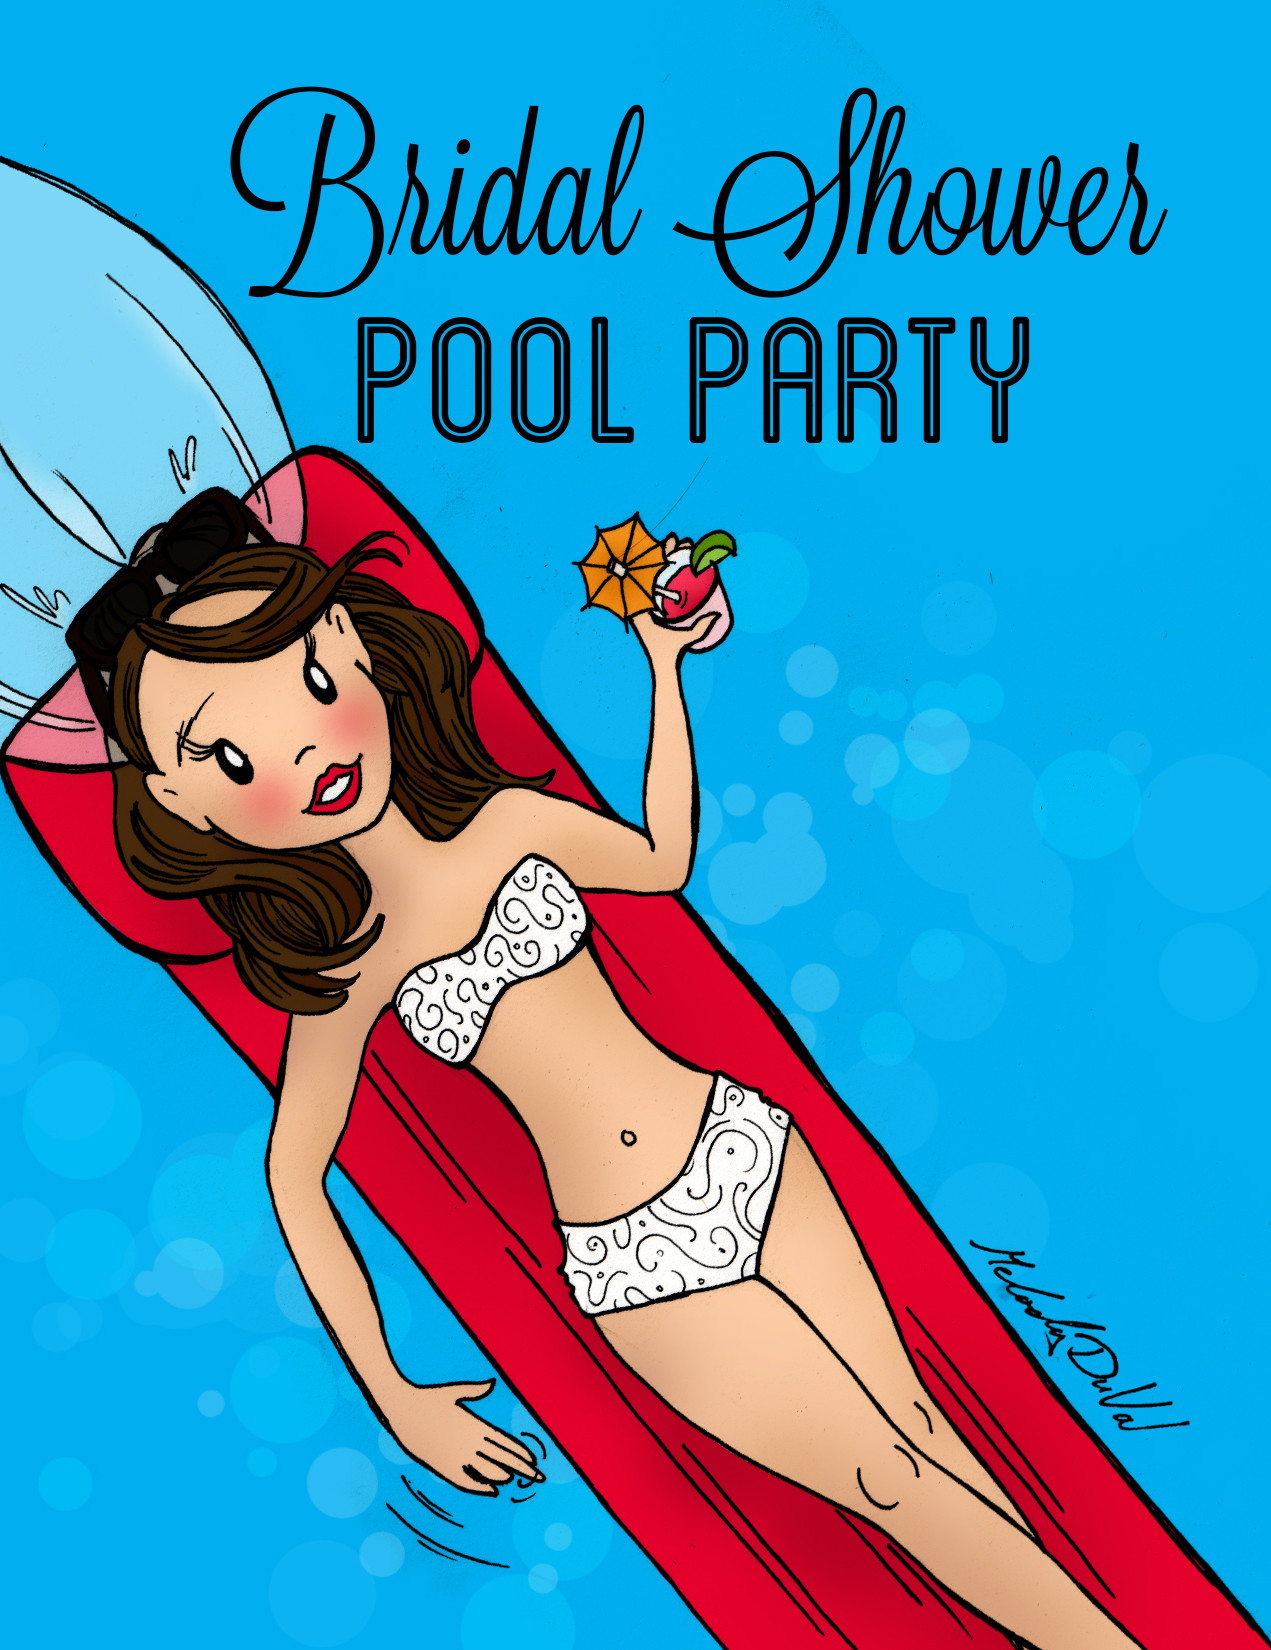 Melody duval bridal shower invites melody duval bridal shower pool party invite front cover sample filmwisefo